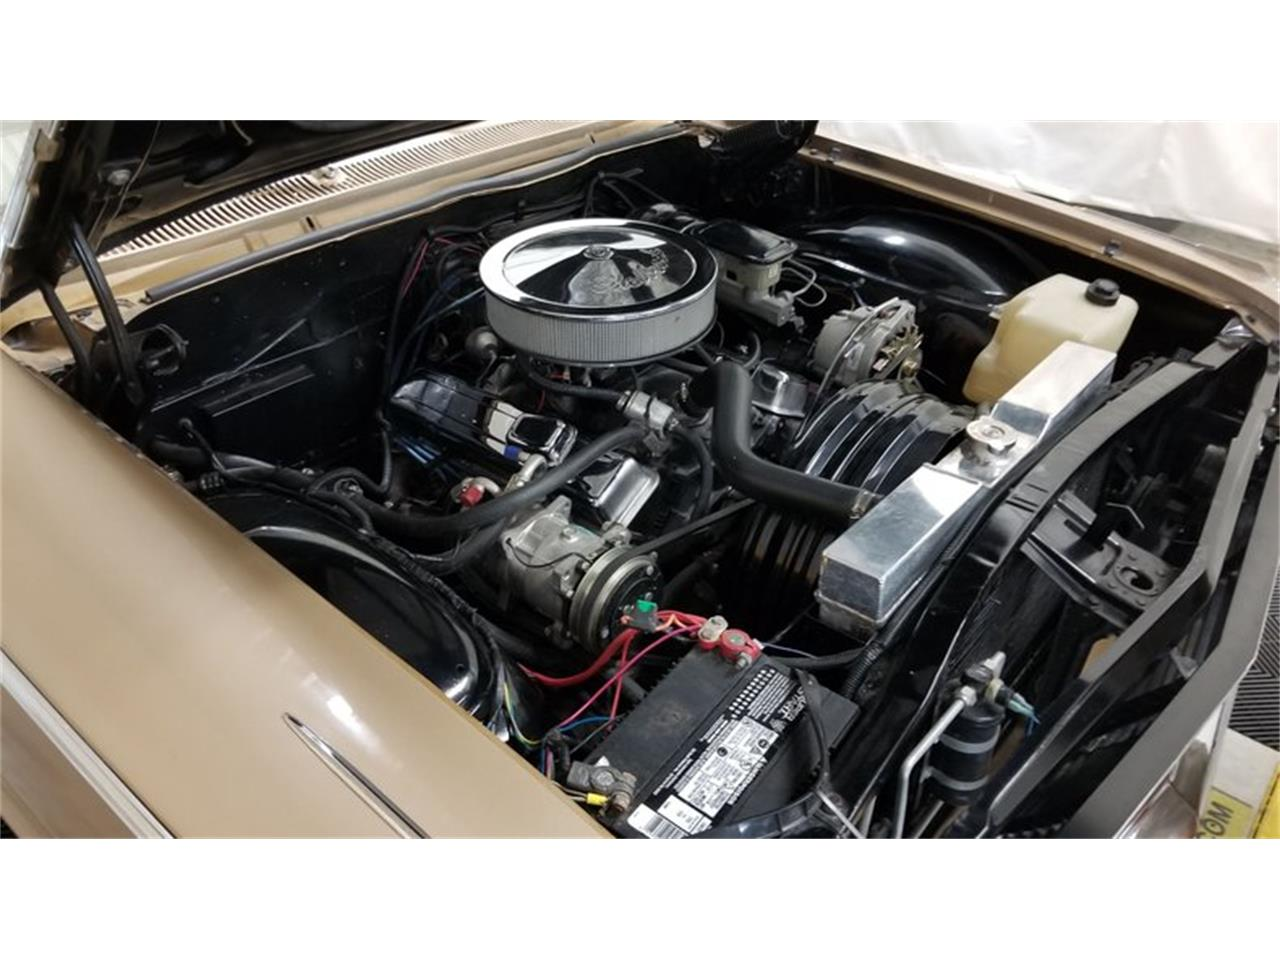 Large Picture of '62 Chevrolet Impala located in Mankato Minnesota - $29,900.00 Offered by Unique Specialty And Classics - QKOQ